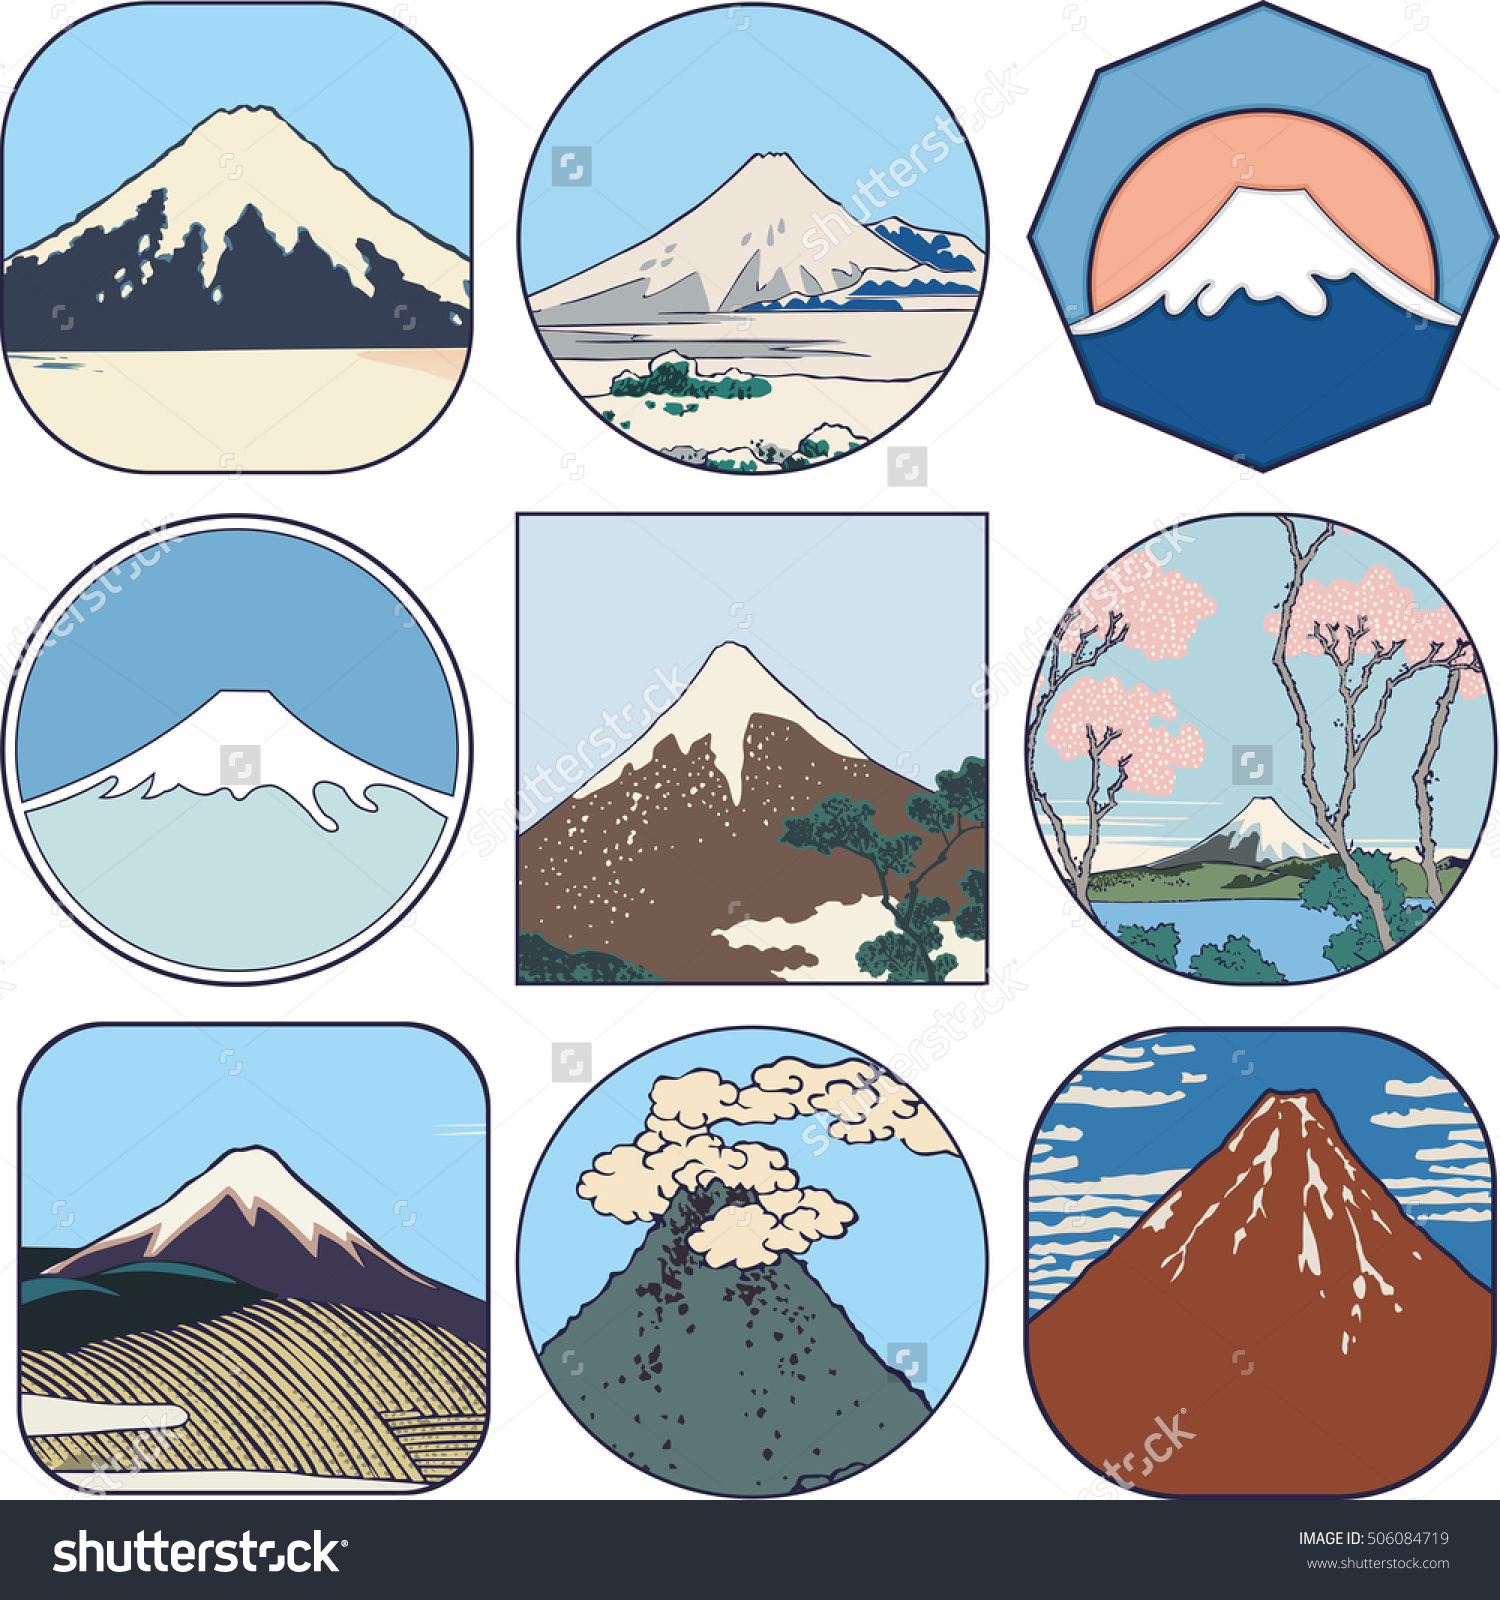 Picturesque Sketches Mount Fuji Japan Set Stock Vector 506084719.